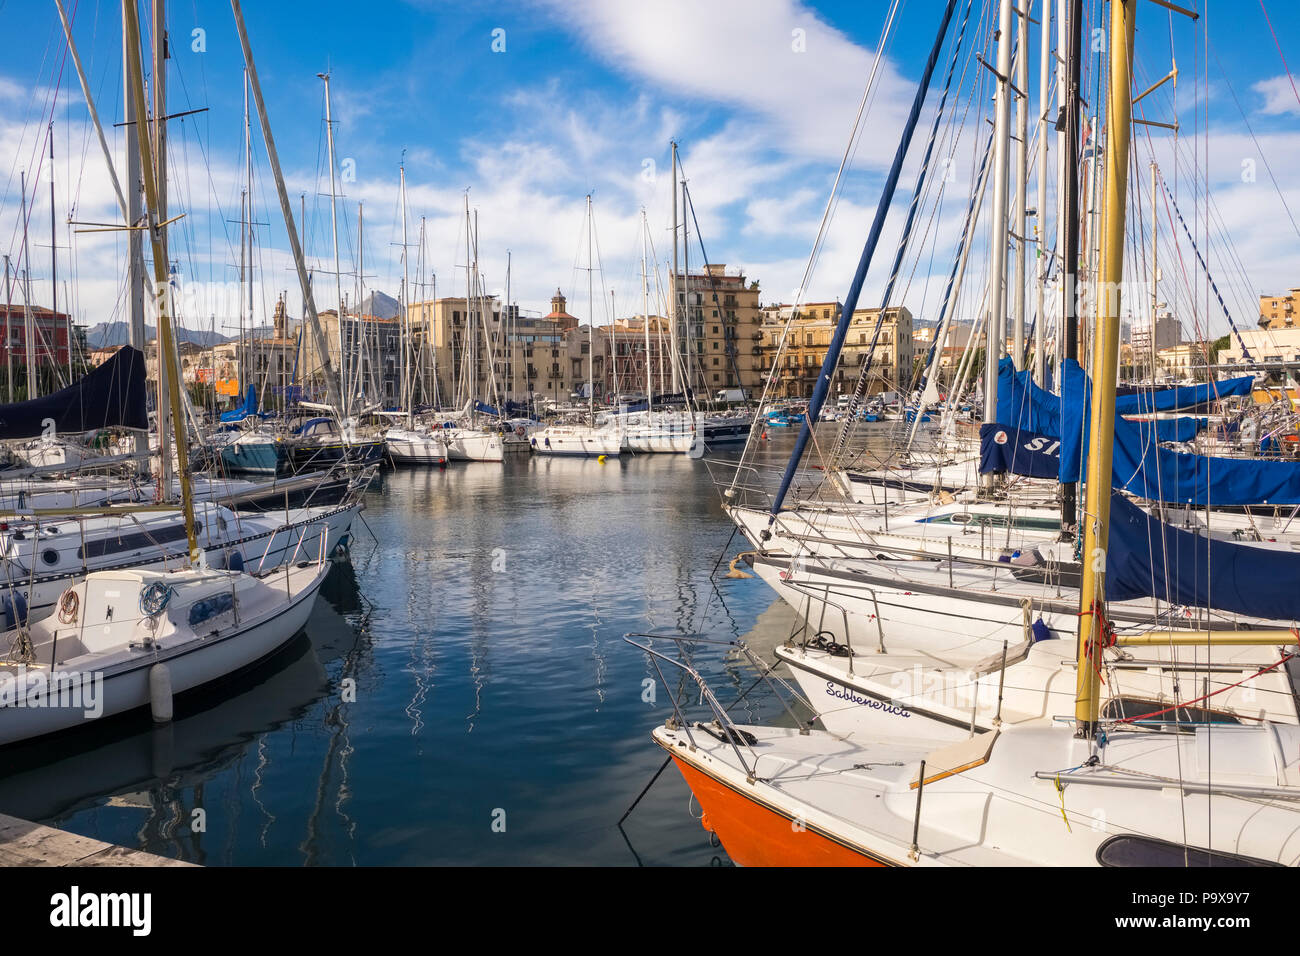 Boats and yachts at Palermo Harbour in Sicily, Italy, Europe - Stock Image